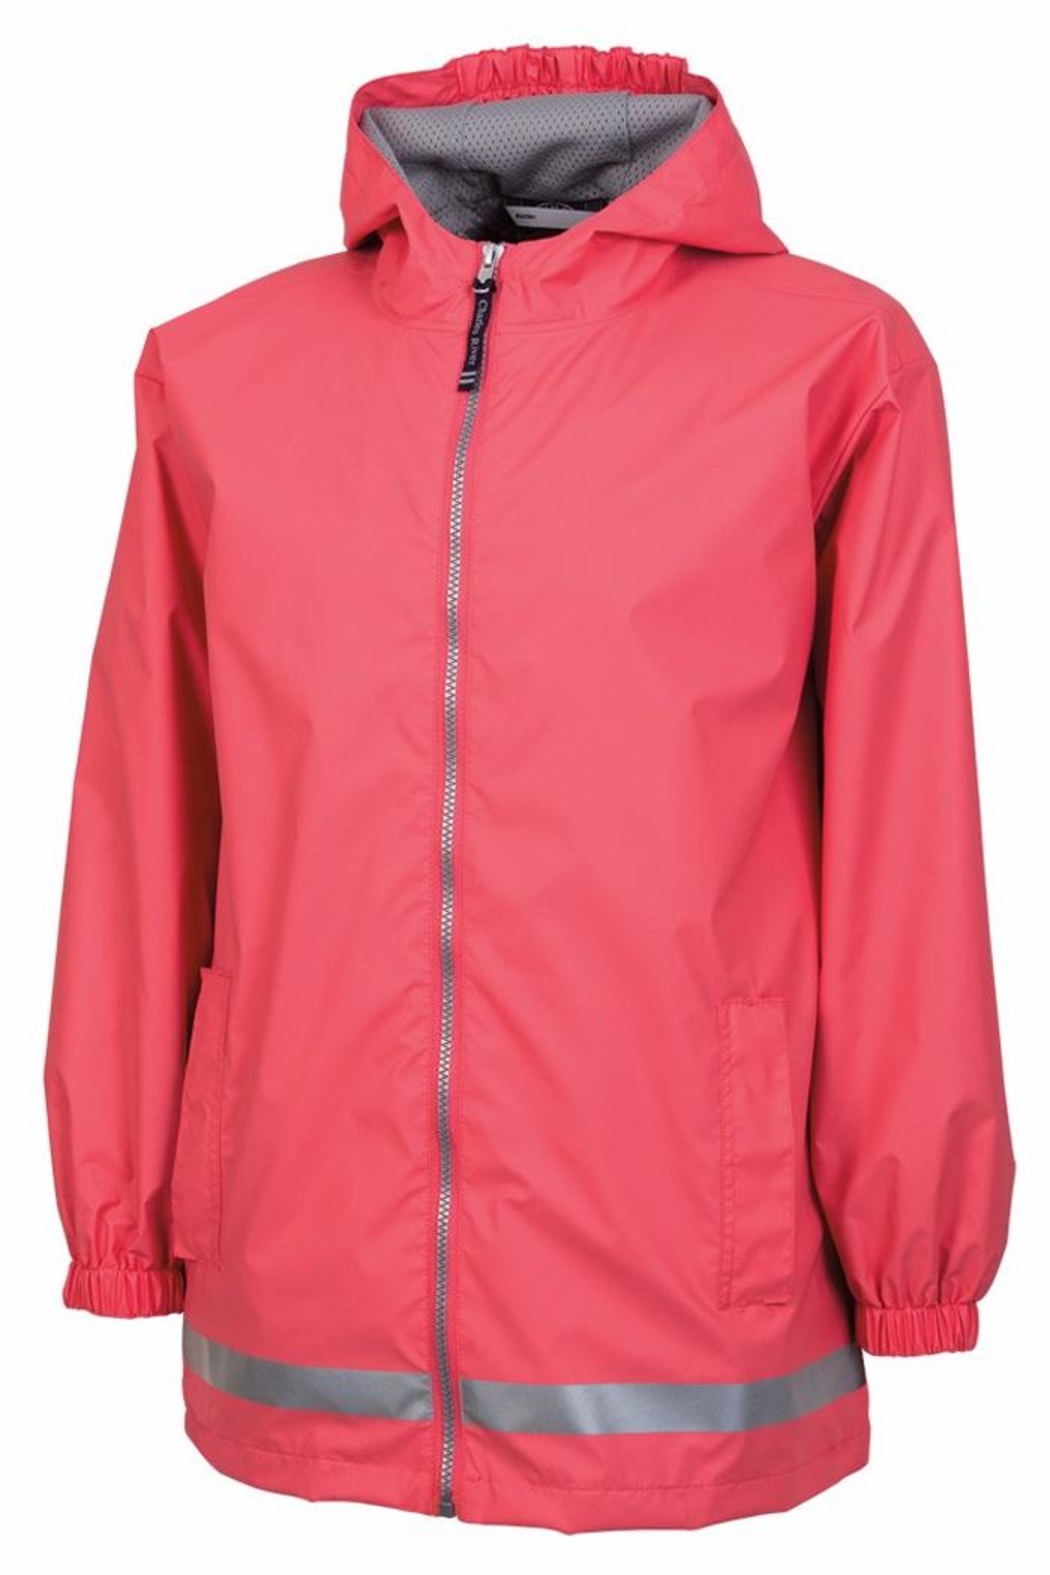 Charles River Apparel Youth Rain Jacket - Front Cropped Image